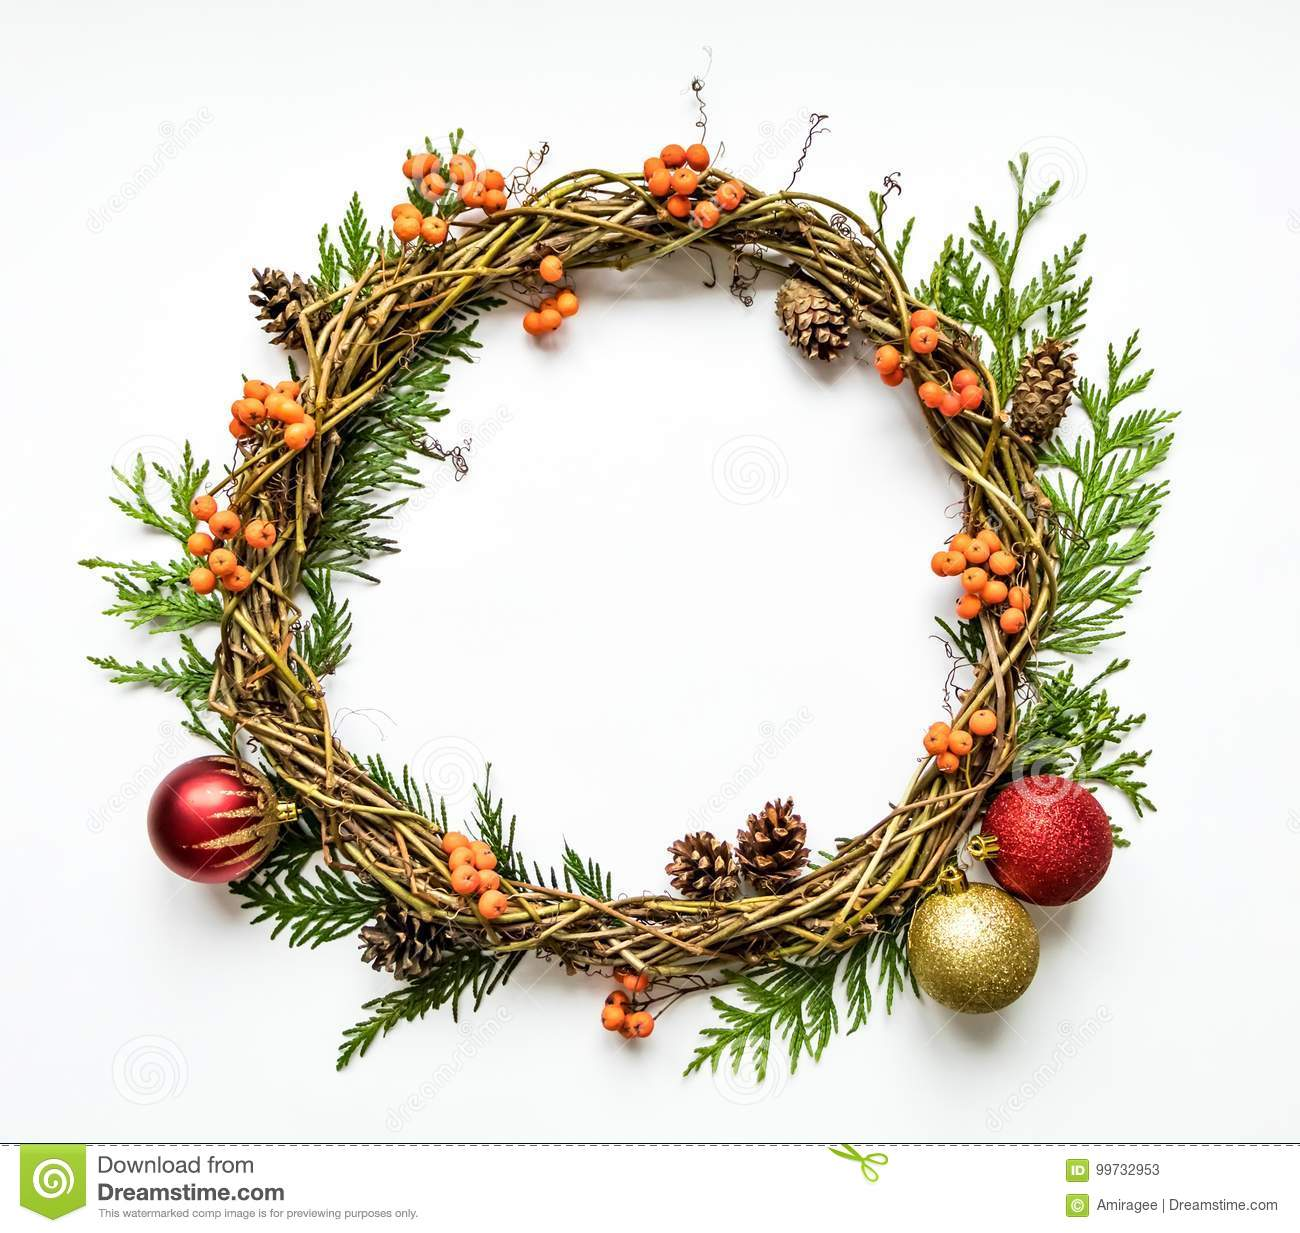 Christmas wreath of vines with decorative ornaments, thuja branches, rowanberries and cones. Flat lay, top view